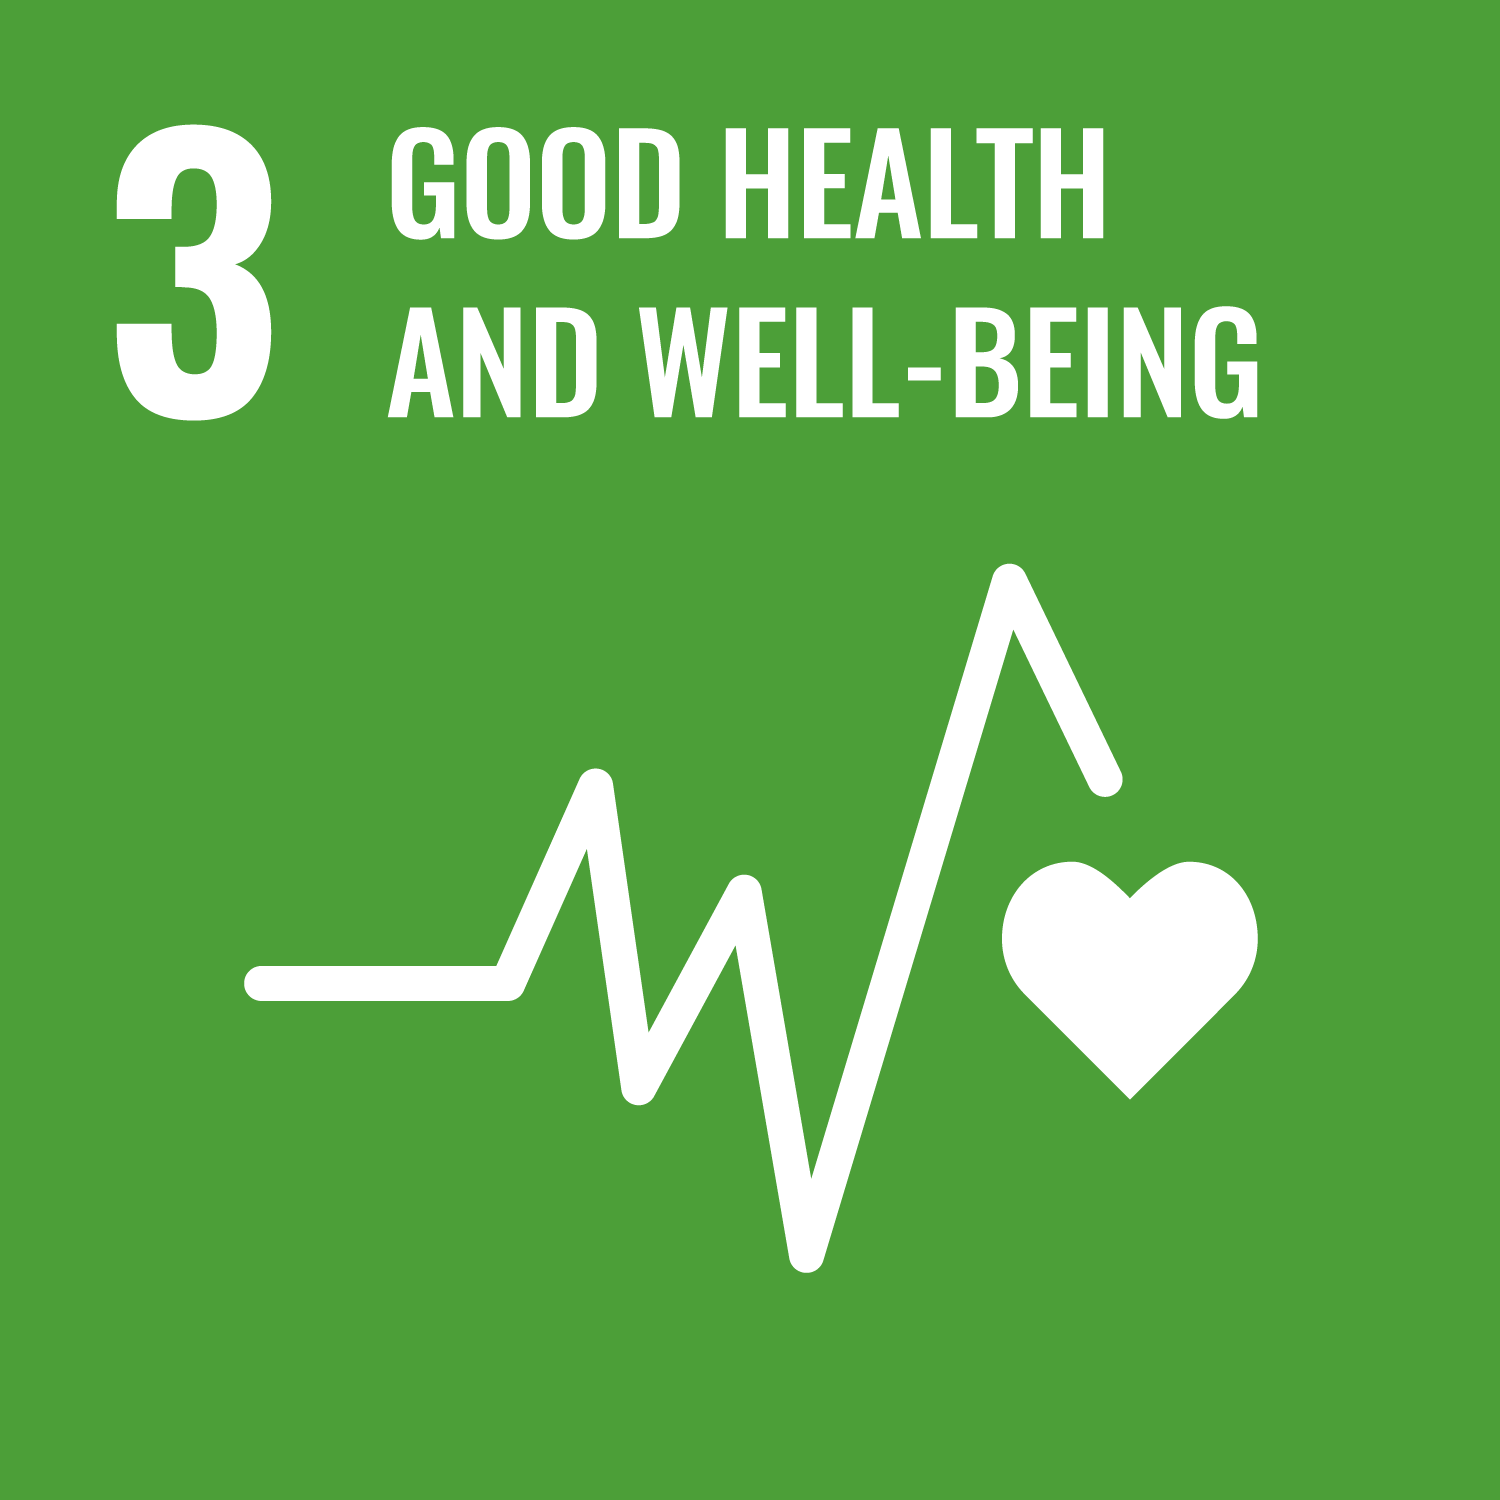 SDG 3 Good Health and Well-being